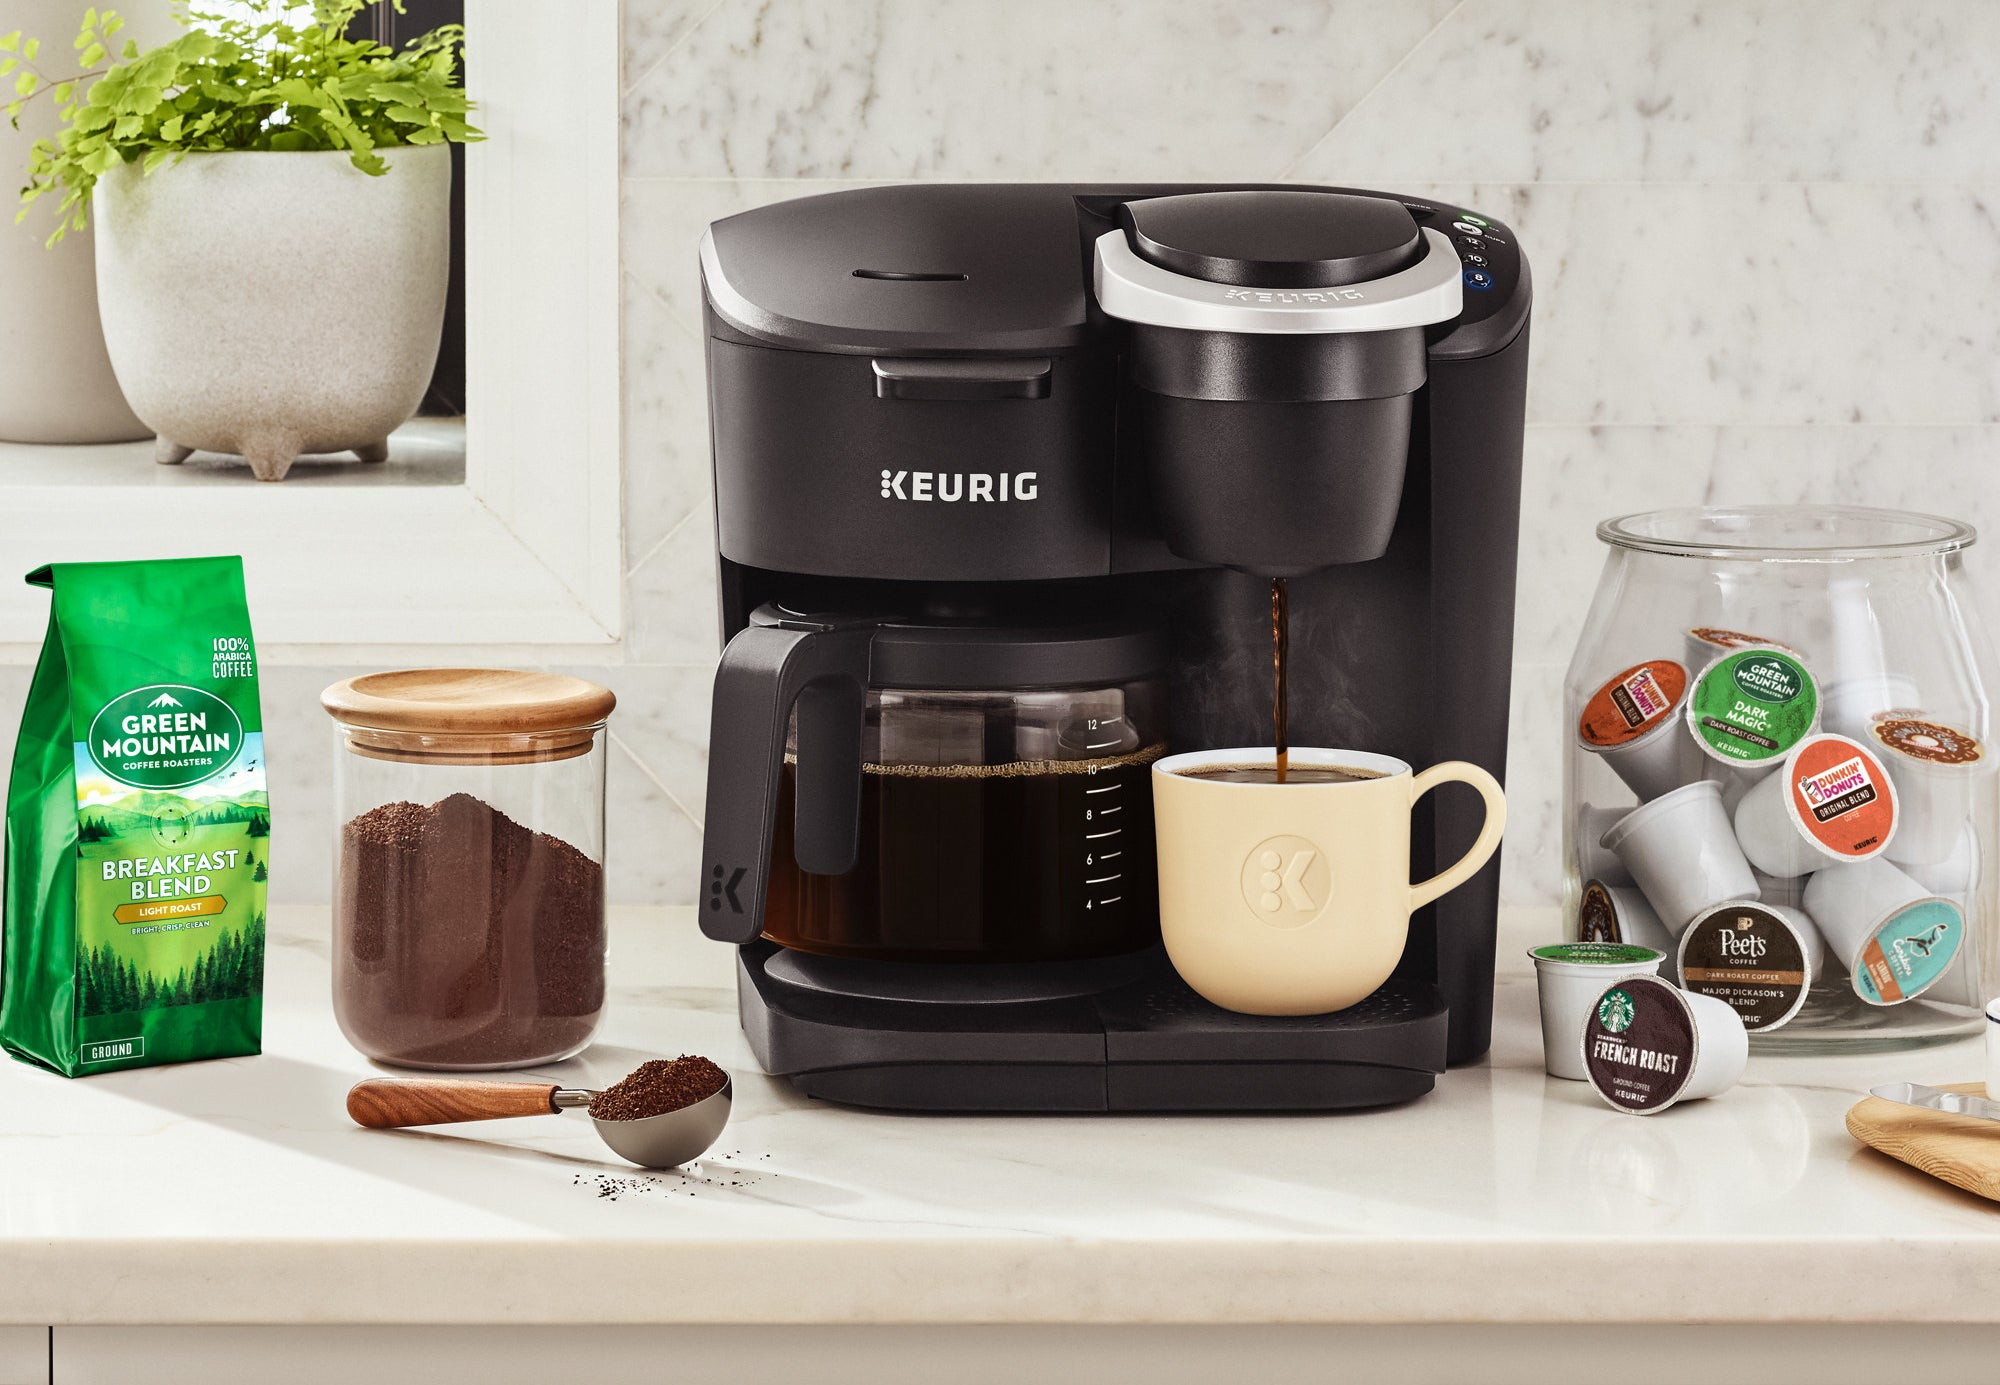 the black keurig coffee maker with k cup pouring and coffee maker brewing